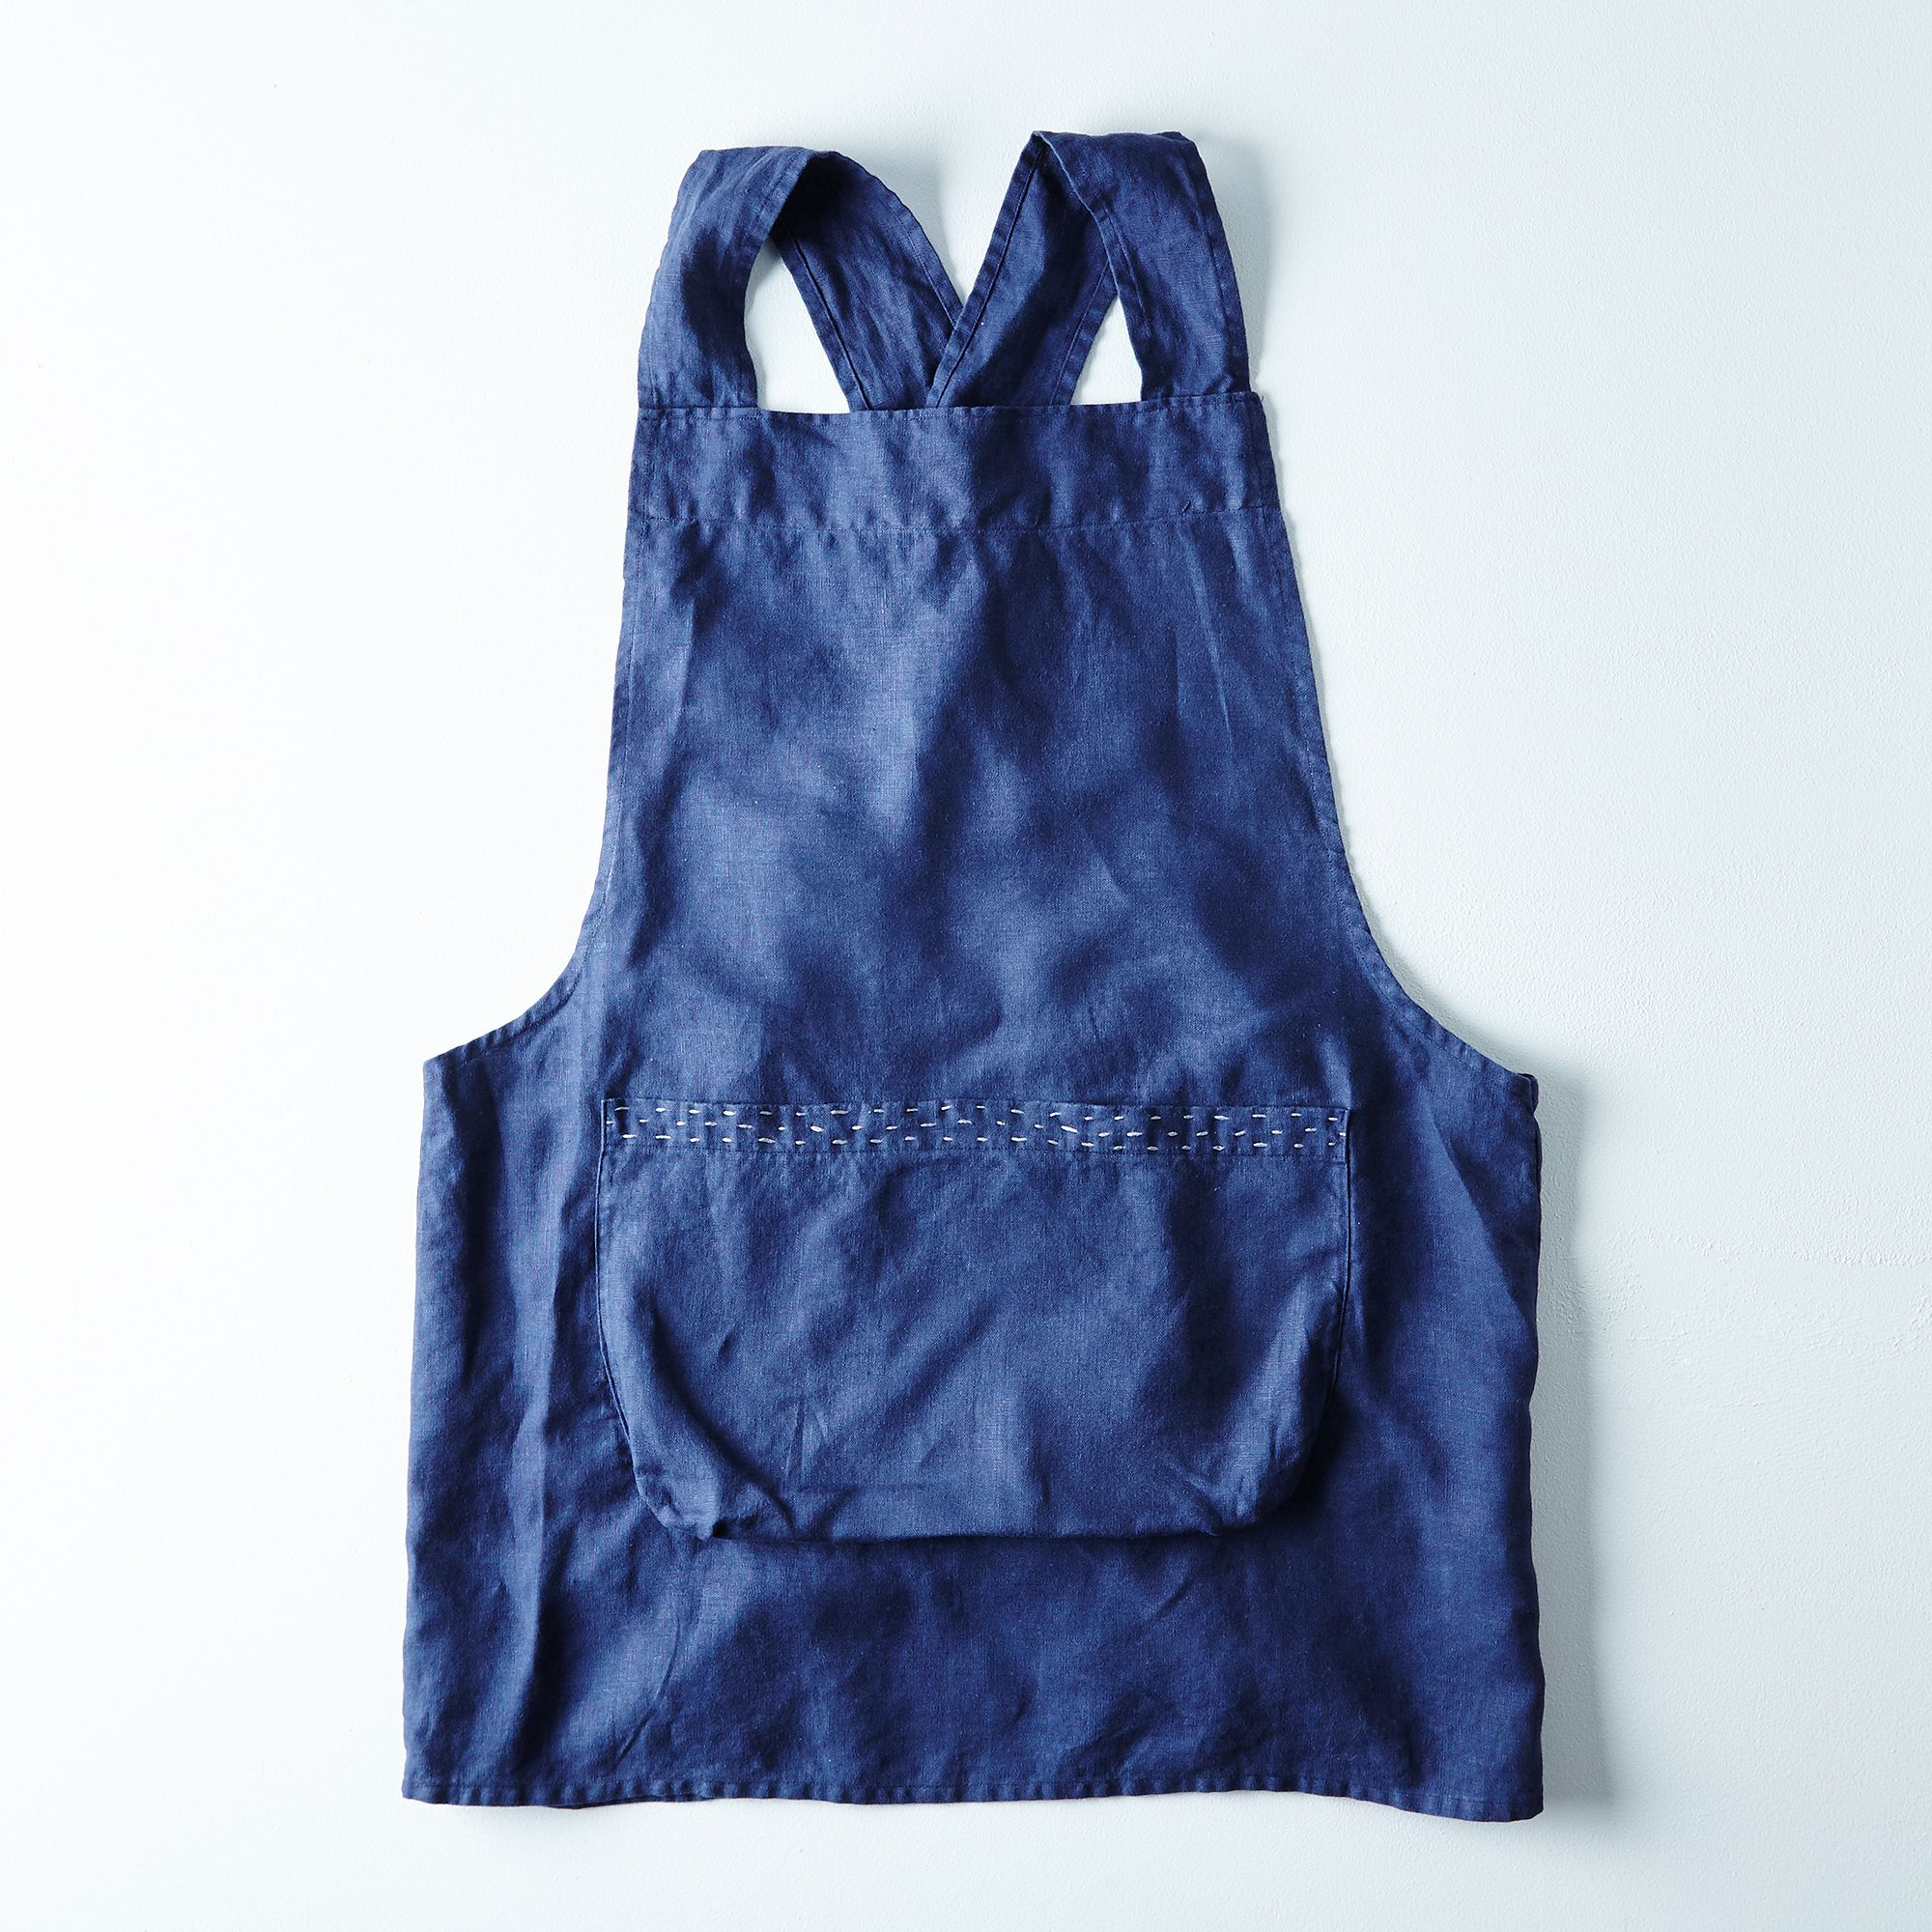 Abc84688 0b32 4cc5 aa14 25e9eaa6fd27  2015 0916 a good home hand embroidered navy linen apron silo rocky luten 010